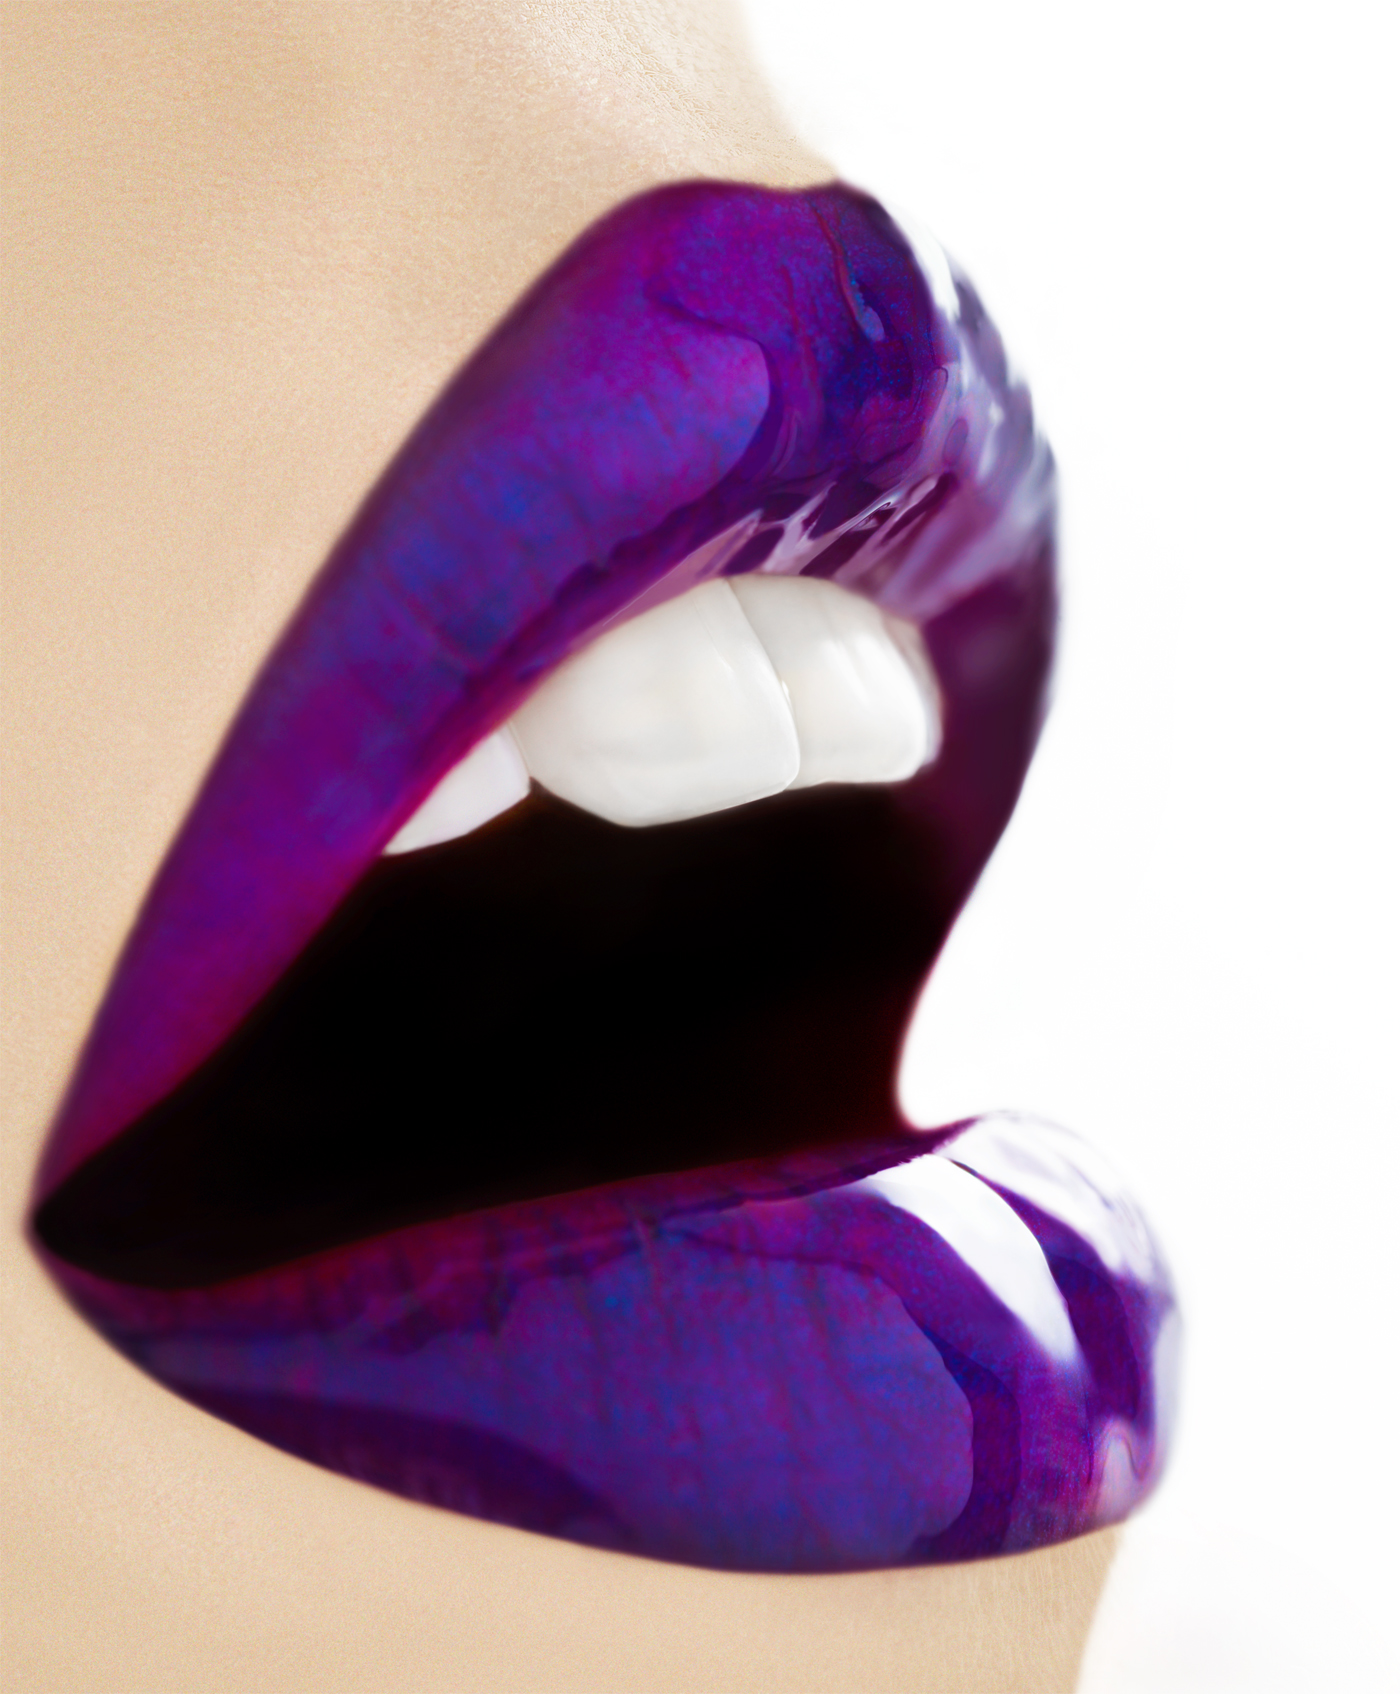 Purple-Lust-#painting-#photography#fineart#popart-#peterwesth-Peter Westh-@peterwesth-